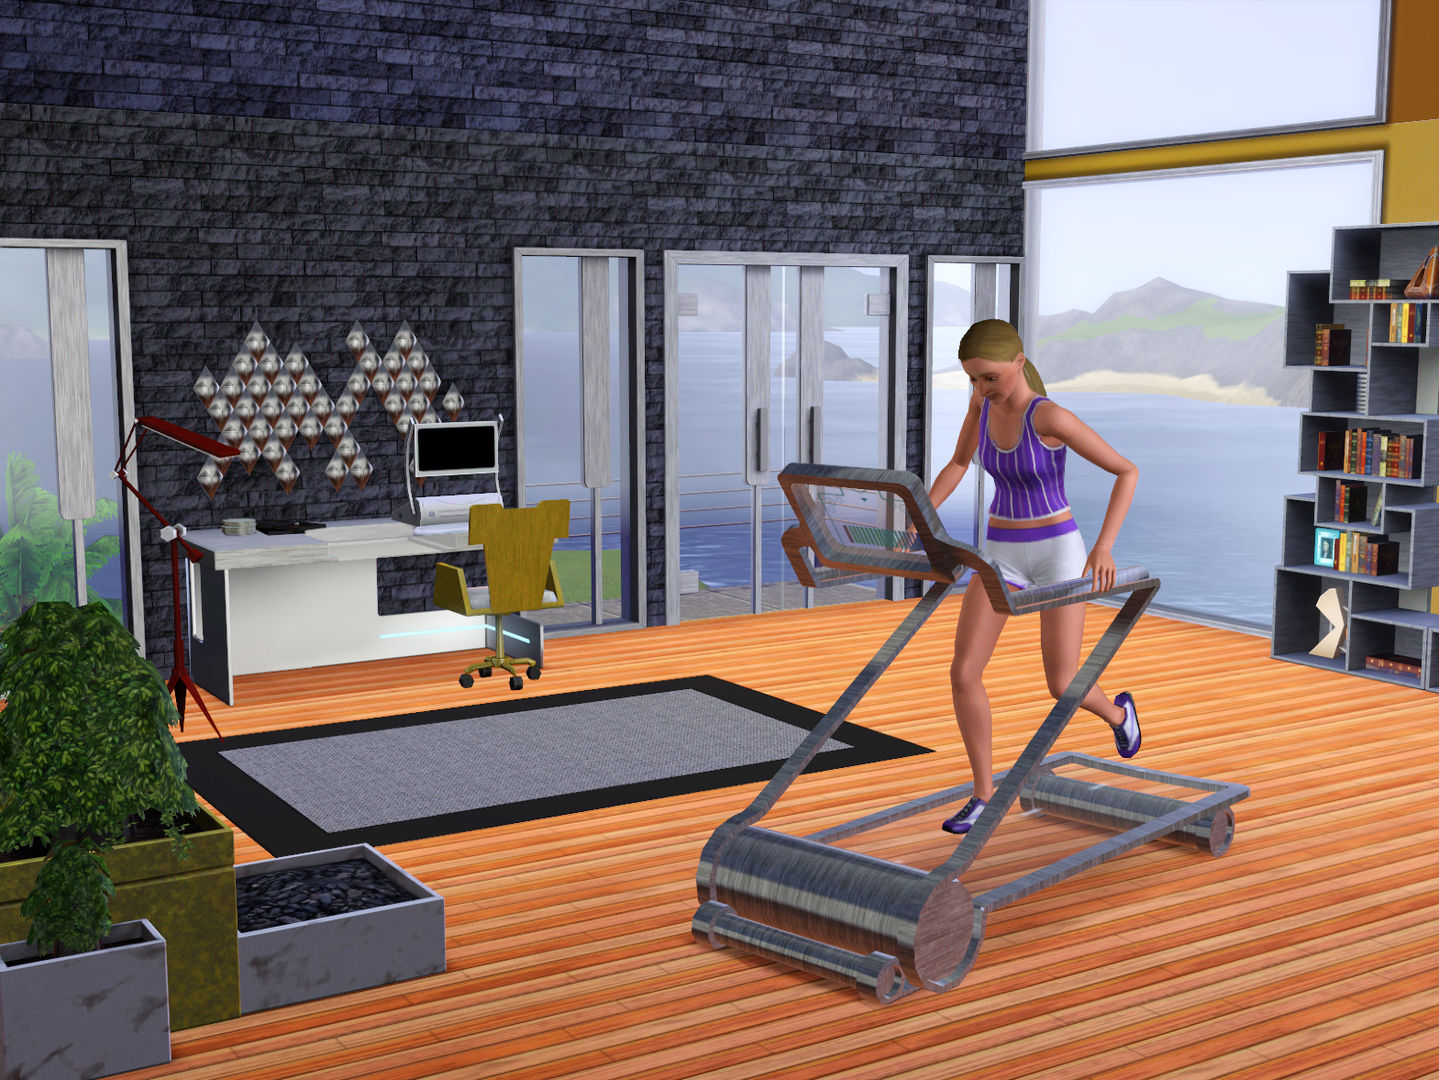 The Sims™ 3 High-End Loft Stuff on Steam on sims 3 family, sims 3 hidden springs, sims 3 bridgeport, sims 3 barnacle bay, sims 3 sunlit tides, sims 3 bedroom tumblr, sims 3 baby walker, sims 3 mermaid, sims 3 moonlight falls, sims 3 baby hair, sims 3 lunar lakes, sims 3 google, sims 3 baby play yard, sims 3 midnight hollow, sims 3 aurora skies, sims 3 teenage bedrooms, sims 3 roaring heights, sims 3 house building, sims 3 star wars, small modern home design houses,